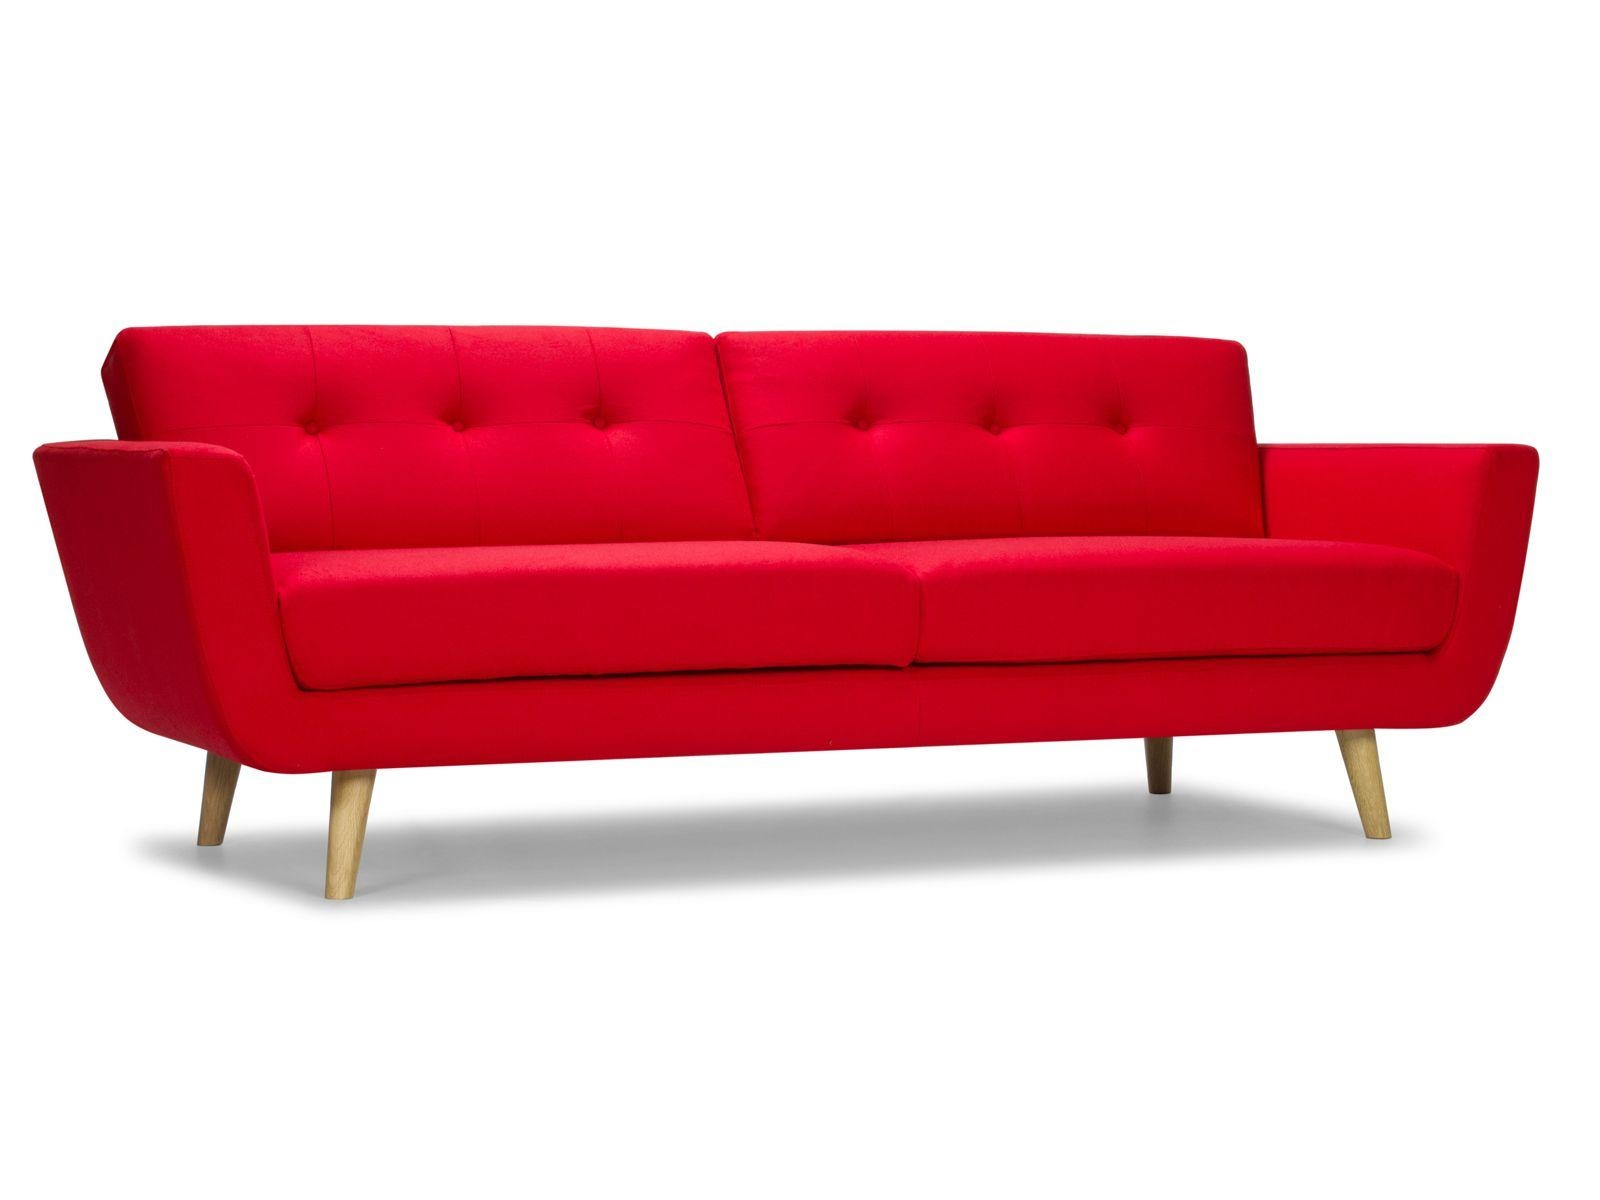 Couch Retro 20 Photos Retro Sofas And Chairs Sofa Ideas